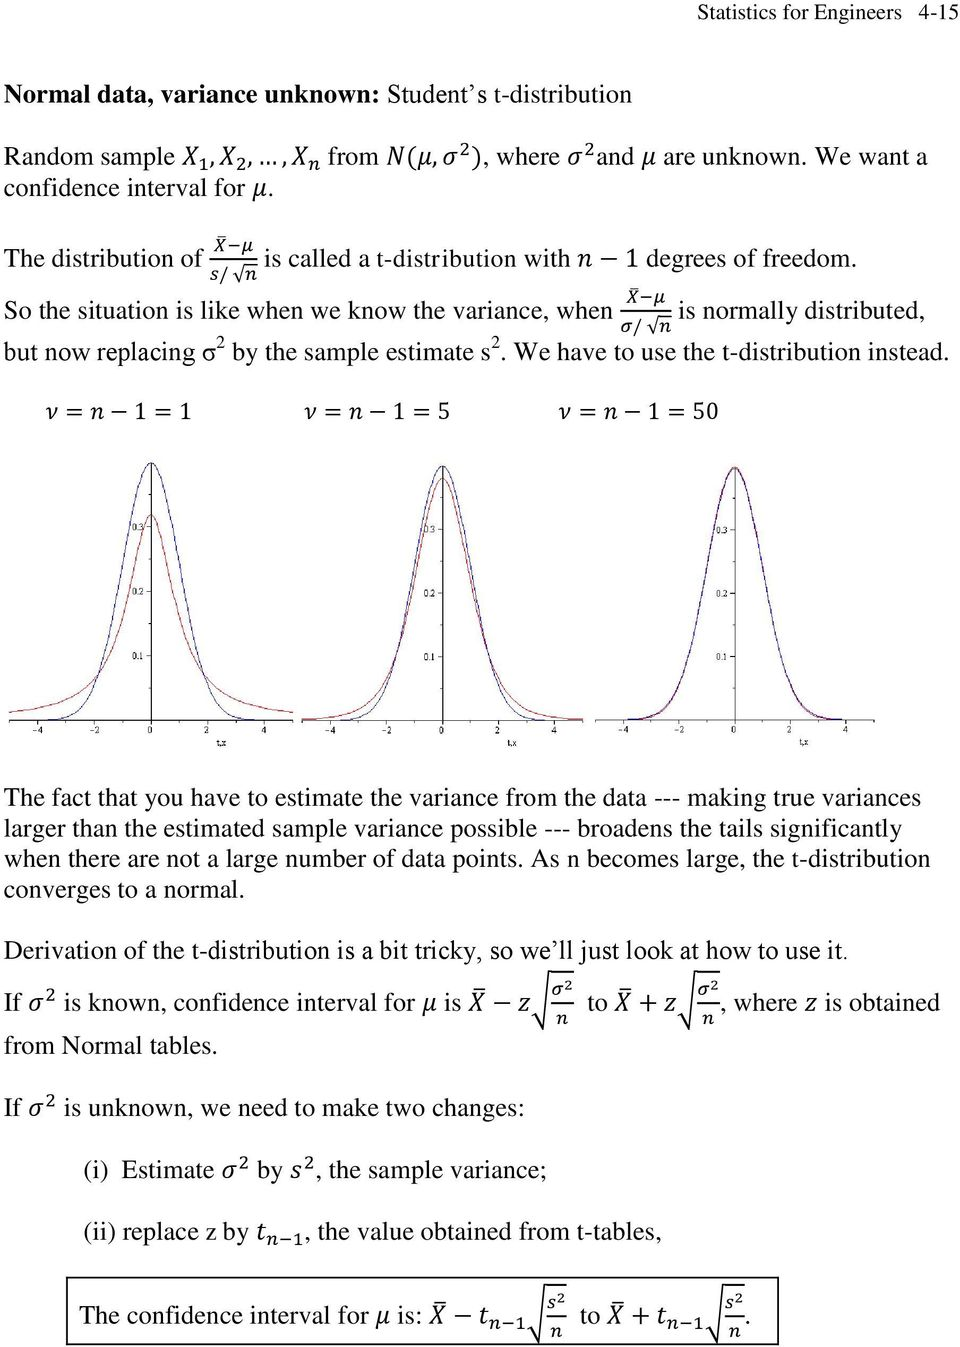 So the situation is like when we know the variance, when is normally distributed, but now replacing σ 2 by the sample estimate s 2. We have to use the t-distribution instead.